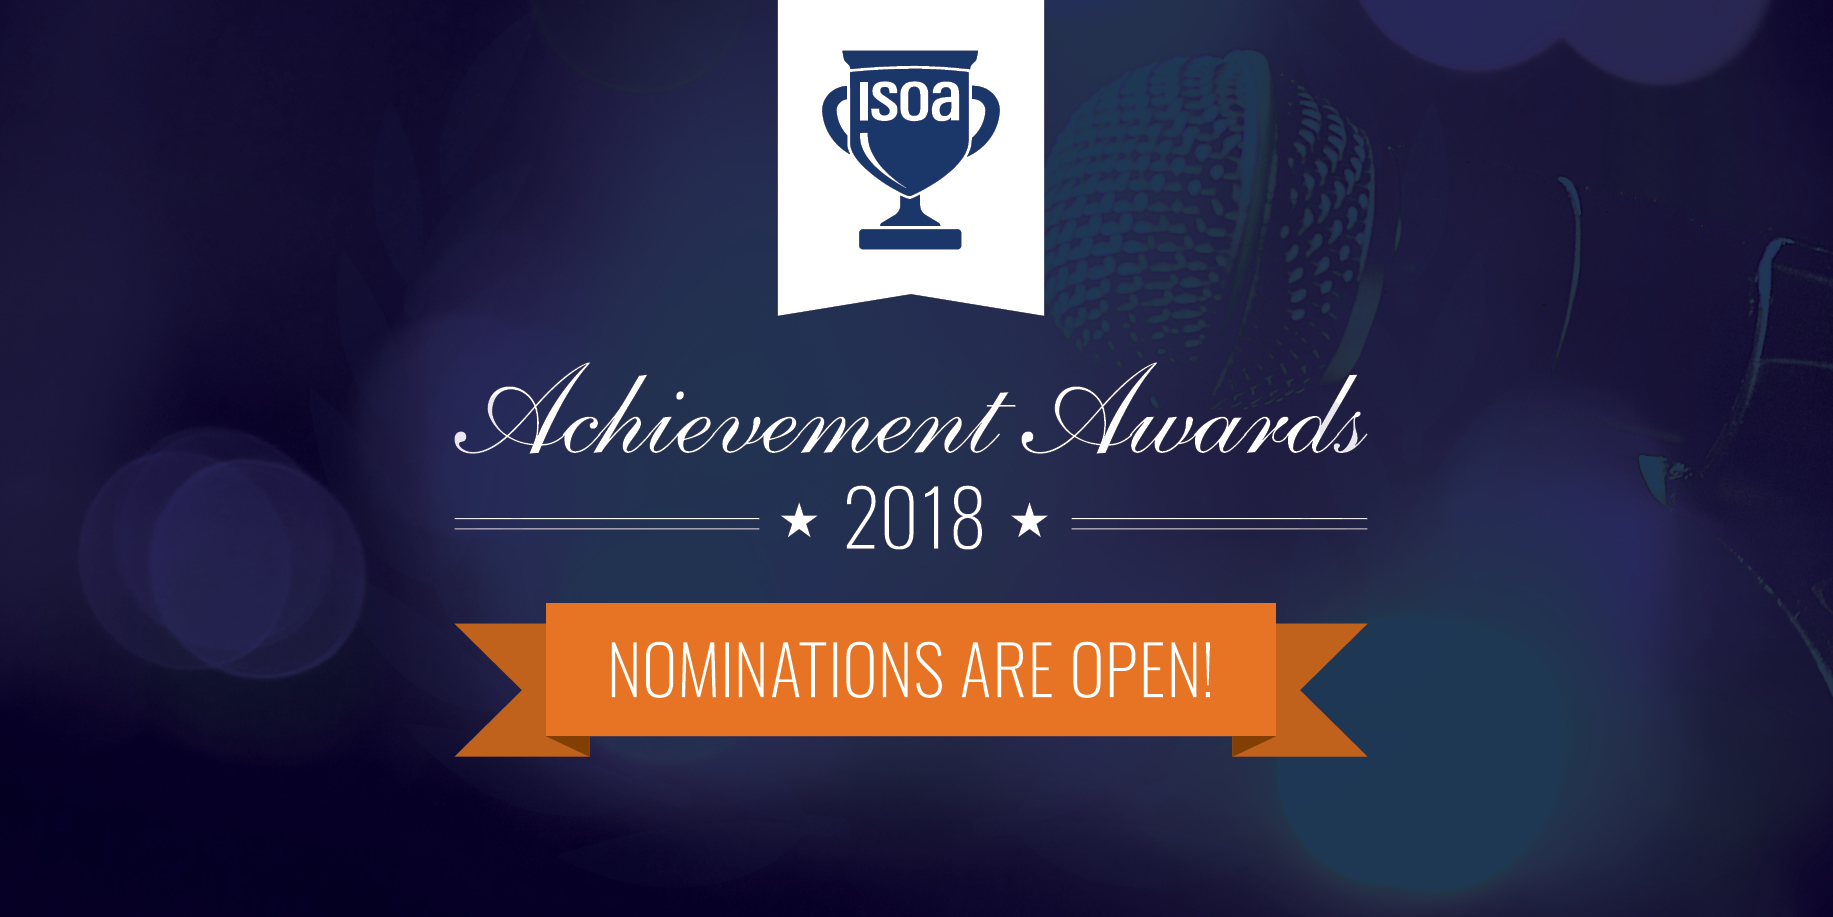 ISOA Achievement Awards 2018 Nominations are Open